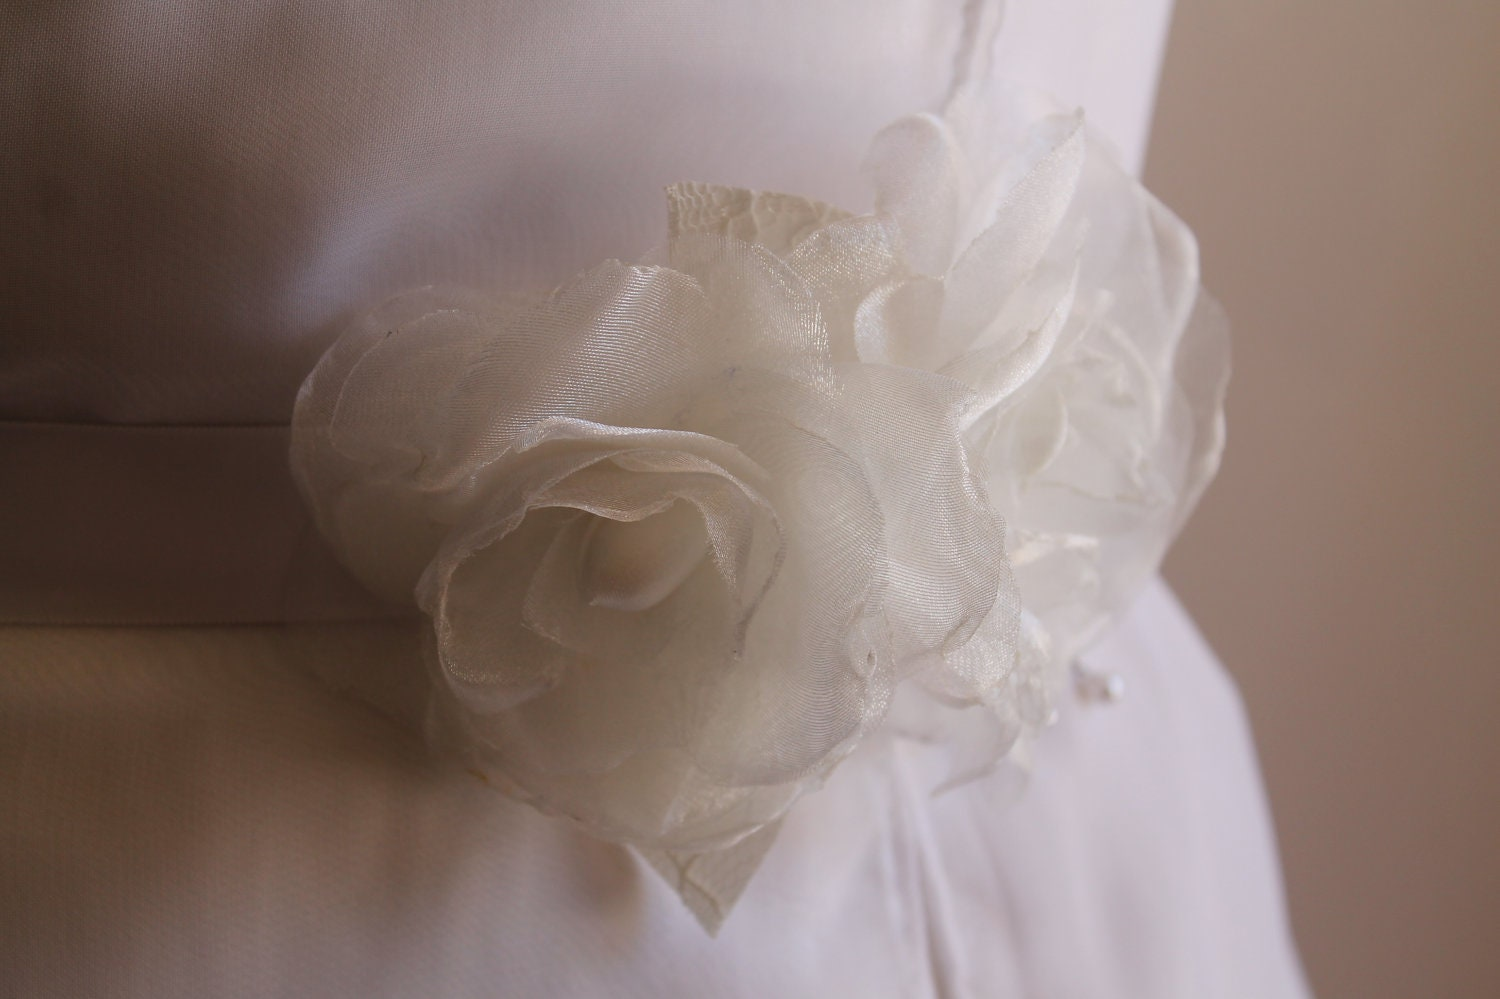 Bridal Sash Roses Organza Set Flower, Wedding Sash, Bridal Belt ,Wedding Accessories